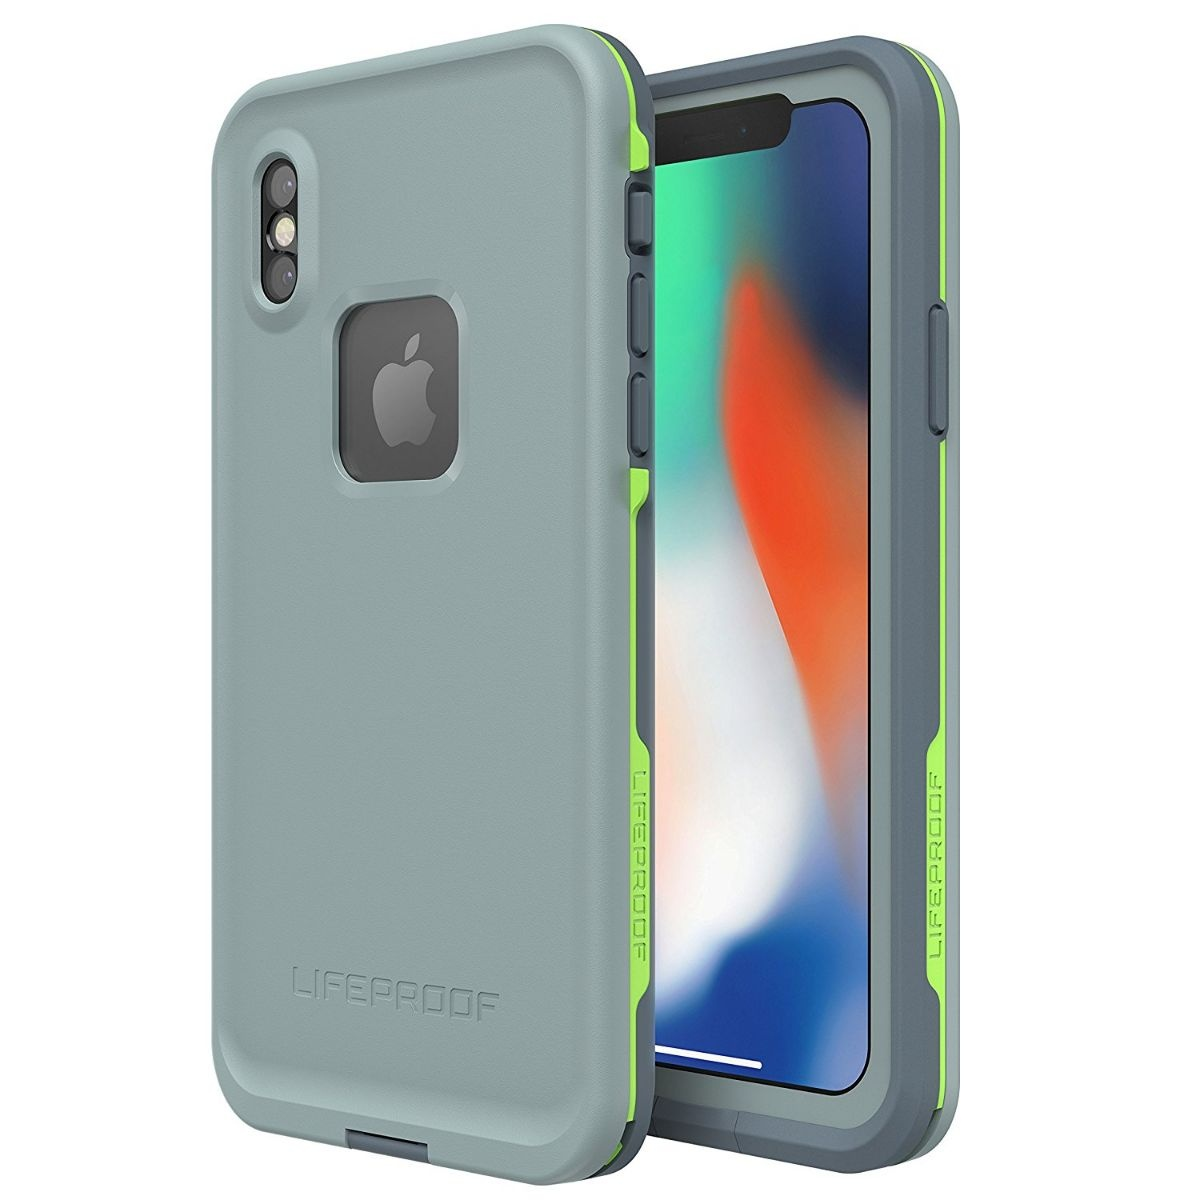 LifeProof FRE Series Waterproof Case Apple iPhone X - Blue Gray / Gray / Lime